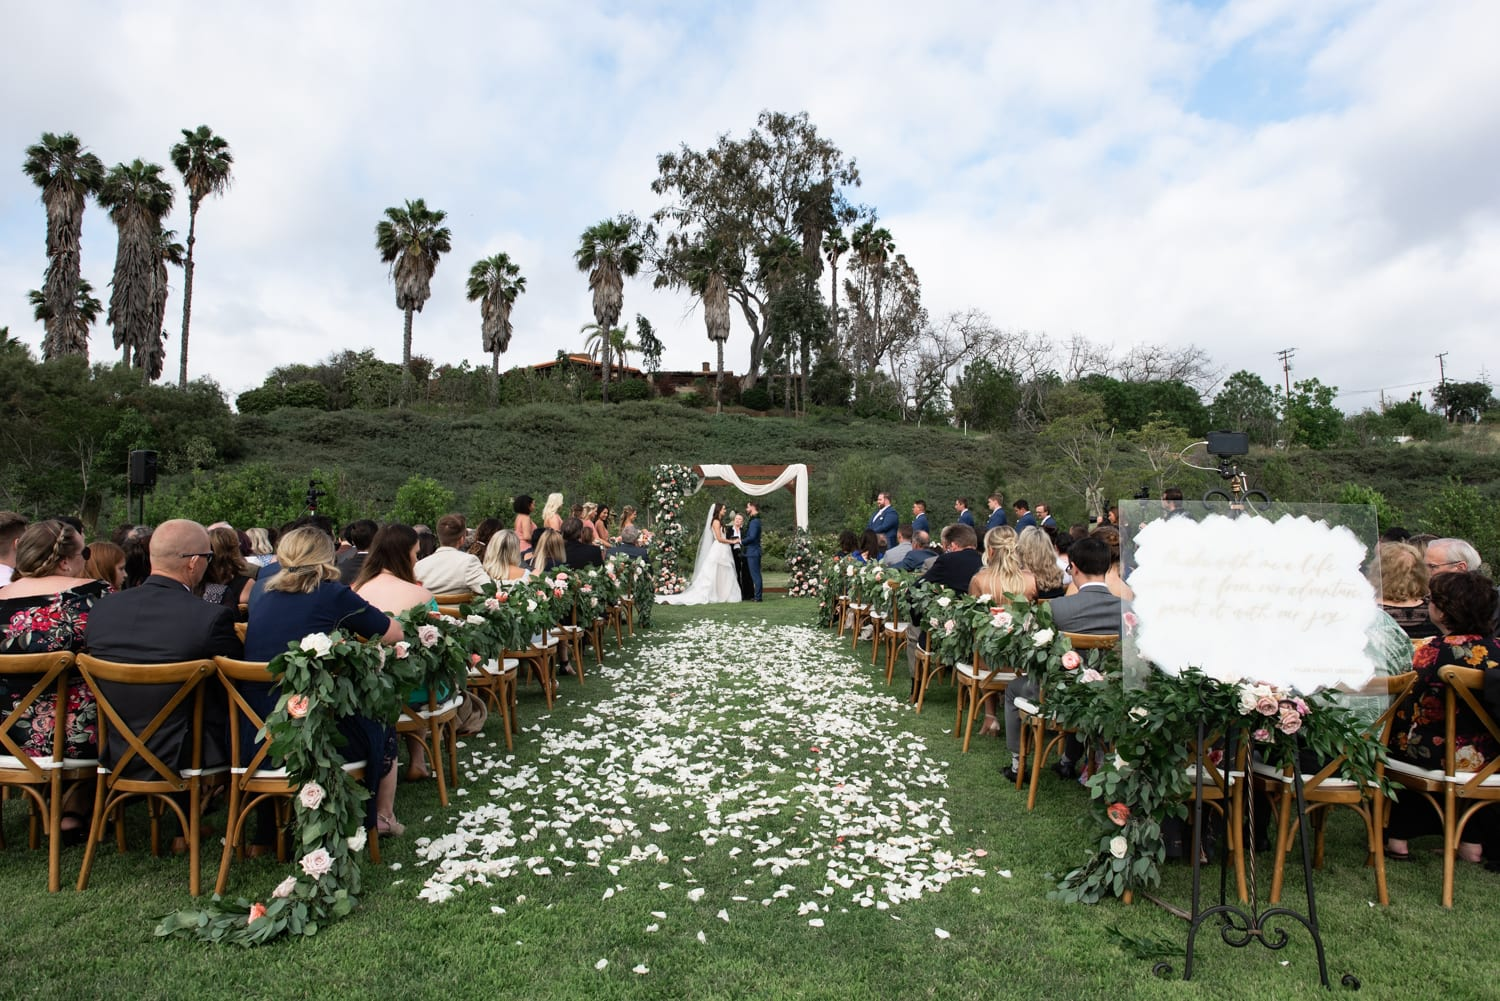 Wedding ceremony in the meadow at Ethereal Gardens in Escondido, CA.